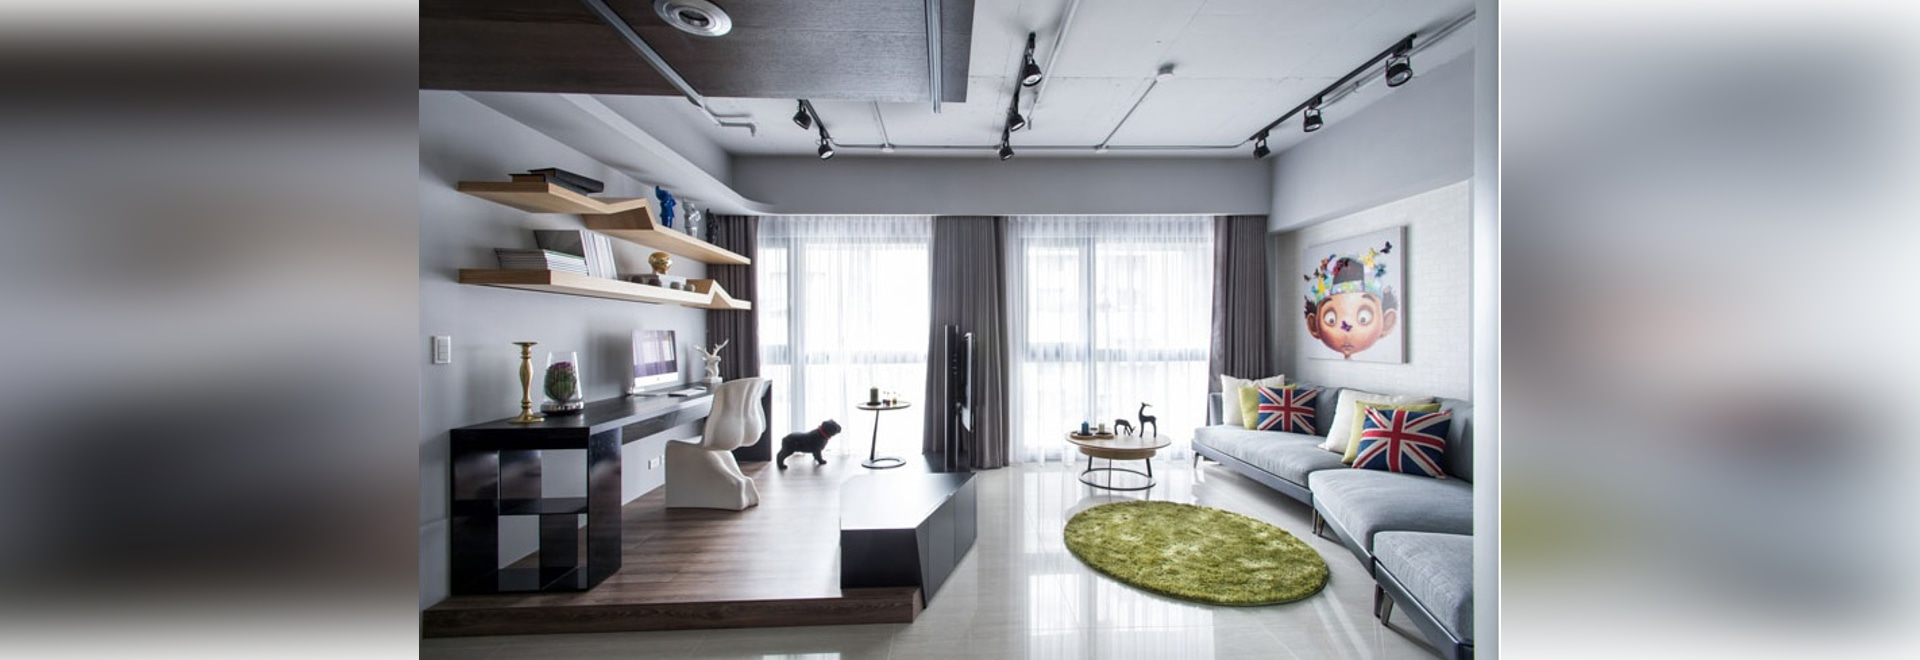 Apartment Design Idea – Divide Space By Slightly Elevating An Area